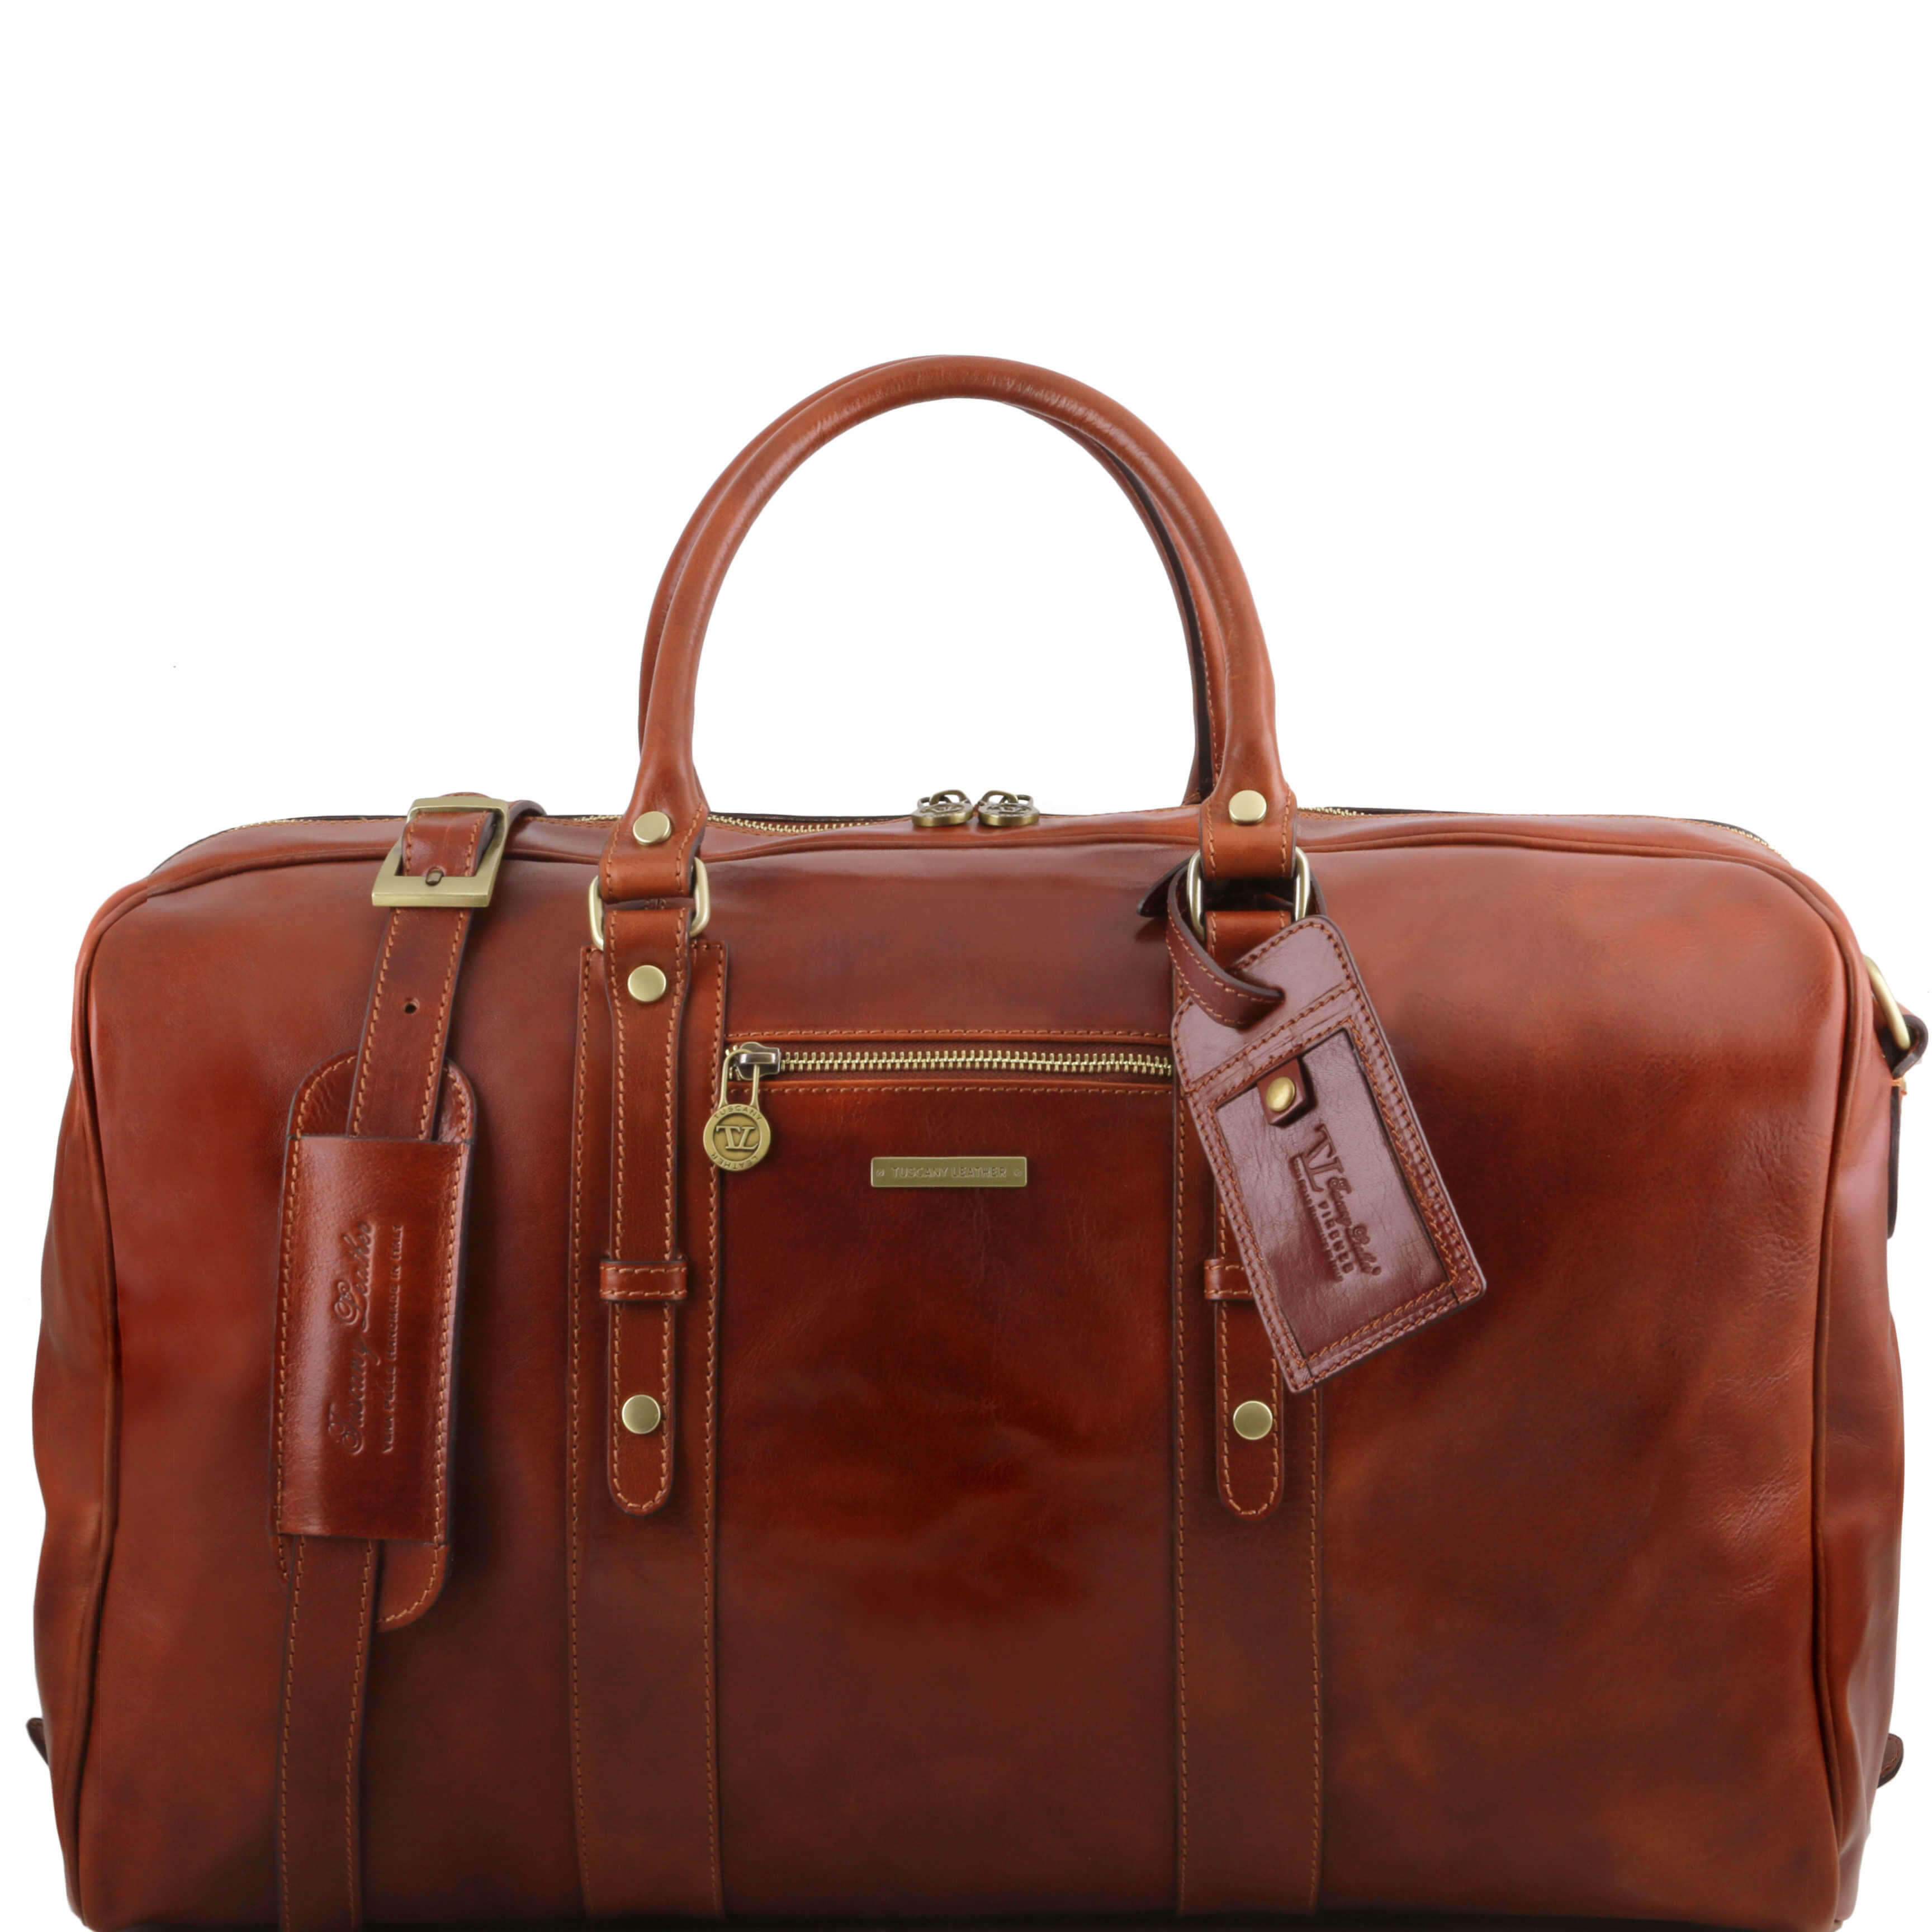 TL141401 Leather Voyager Travel-Luggage-Duffel-Bag-Holdall Case & Shoulder Strap In Brown